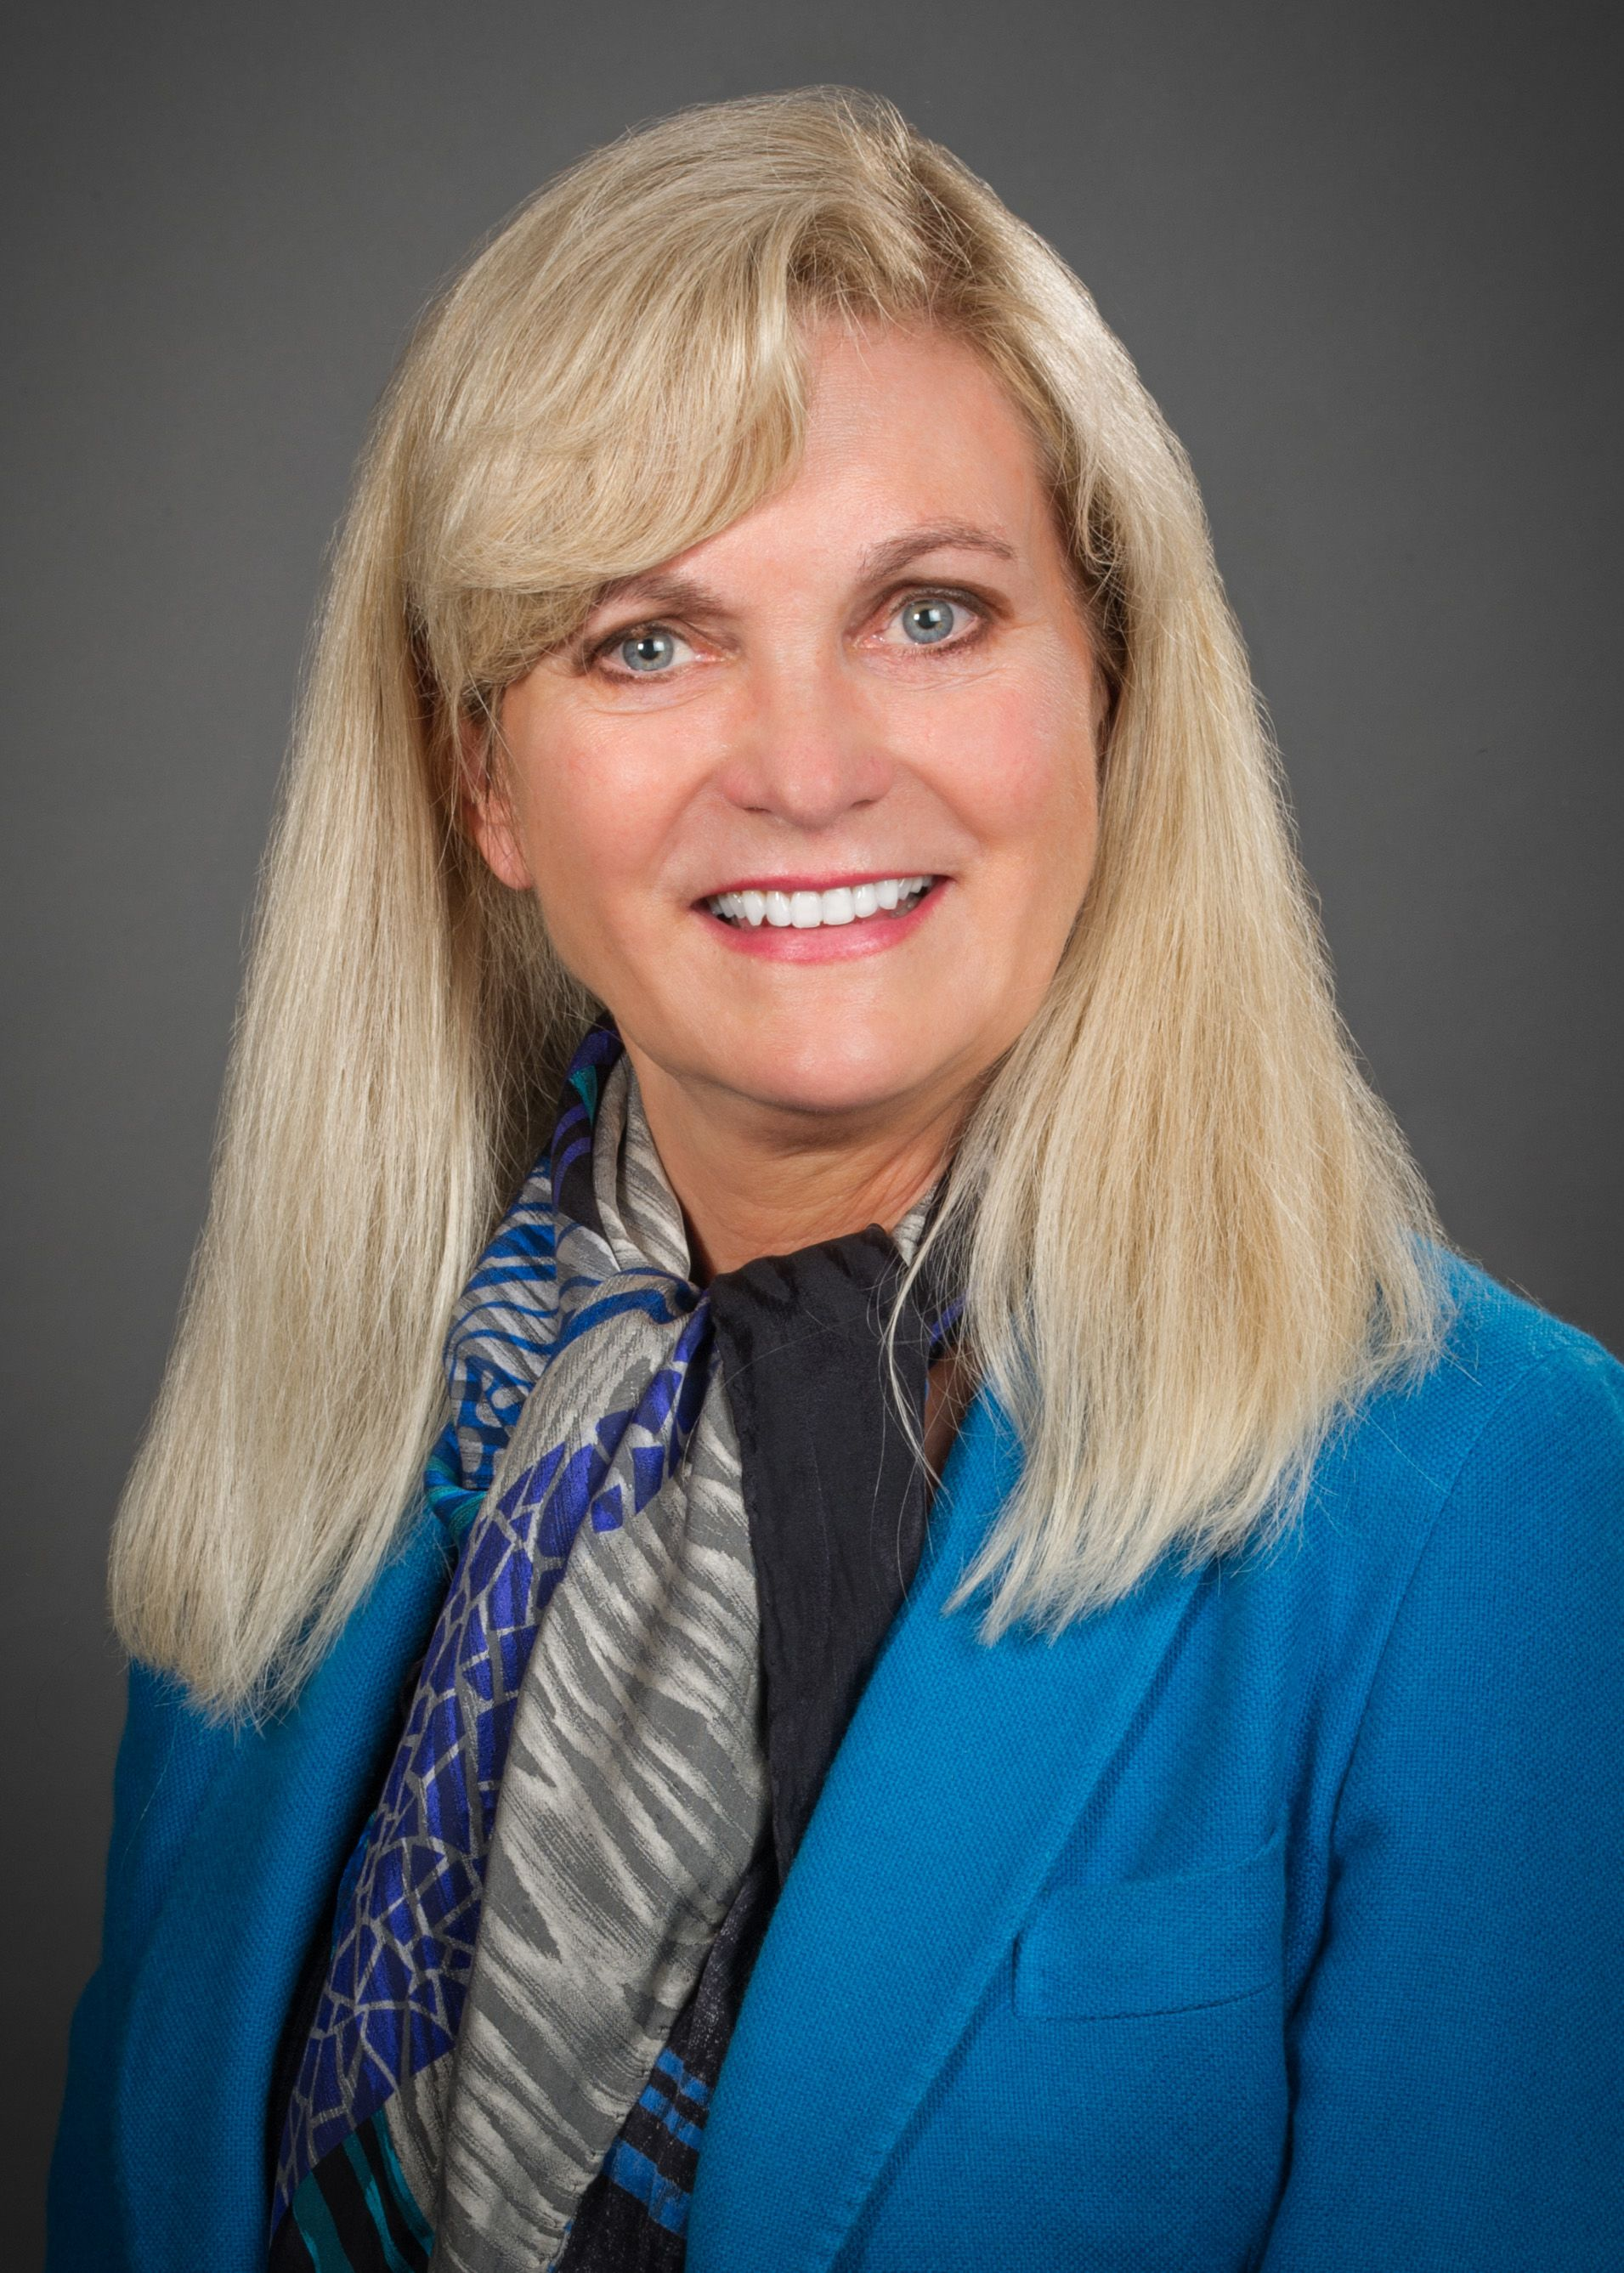 Cindy Grines, MD, wearing a blue jacket and multi-colored scarf